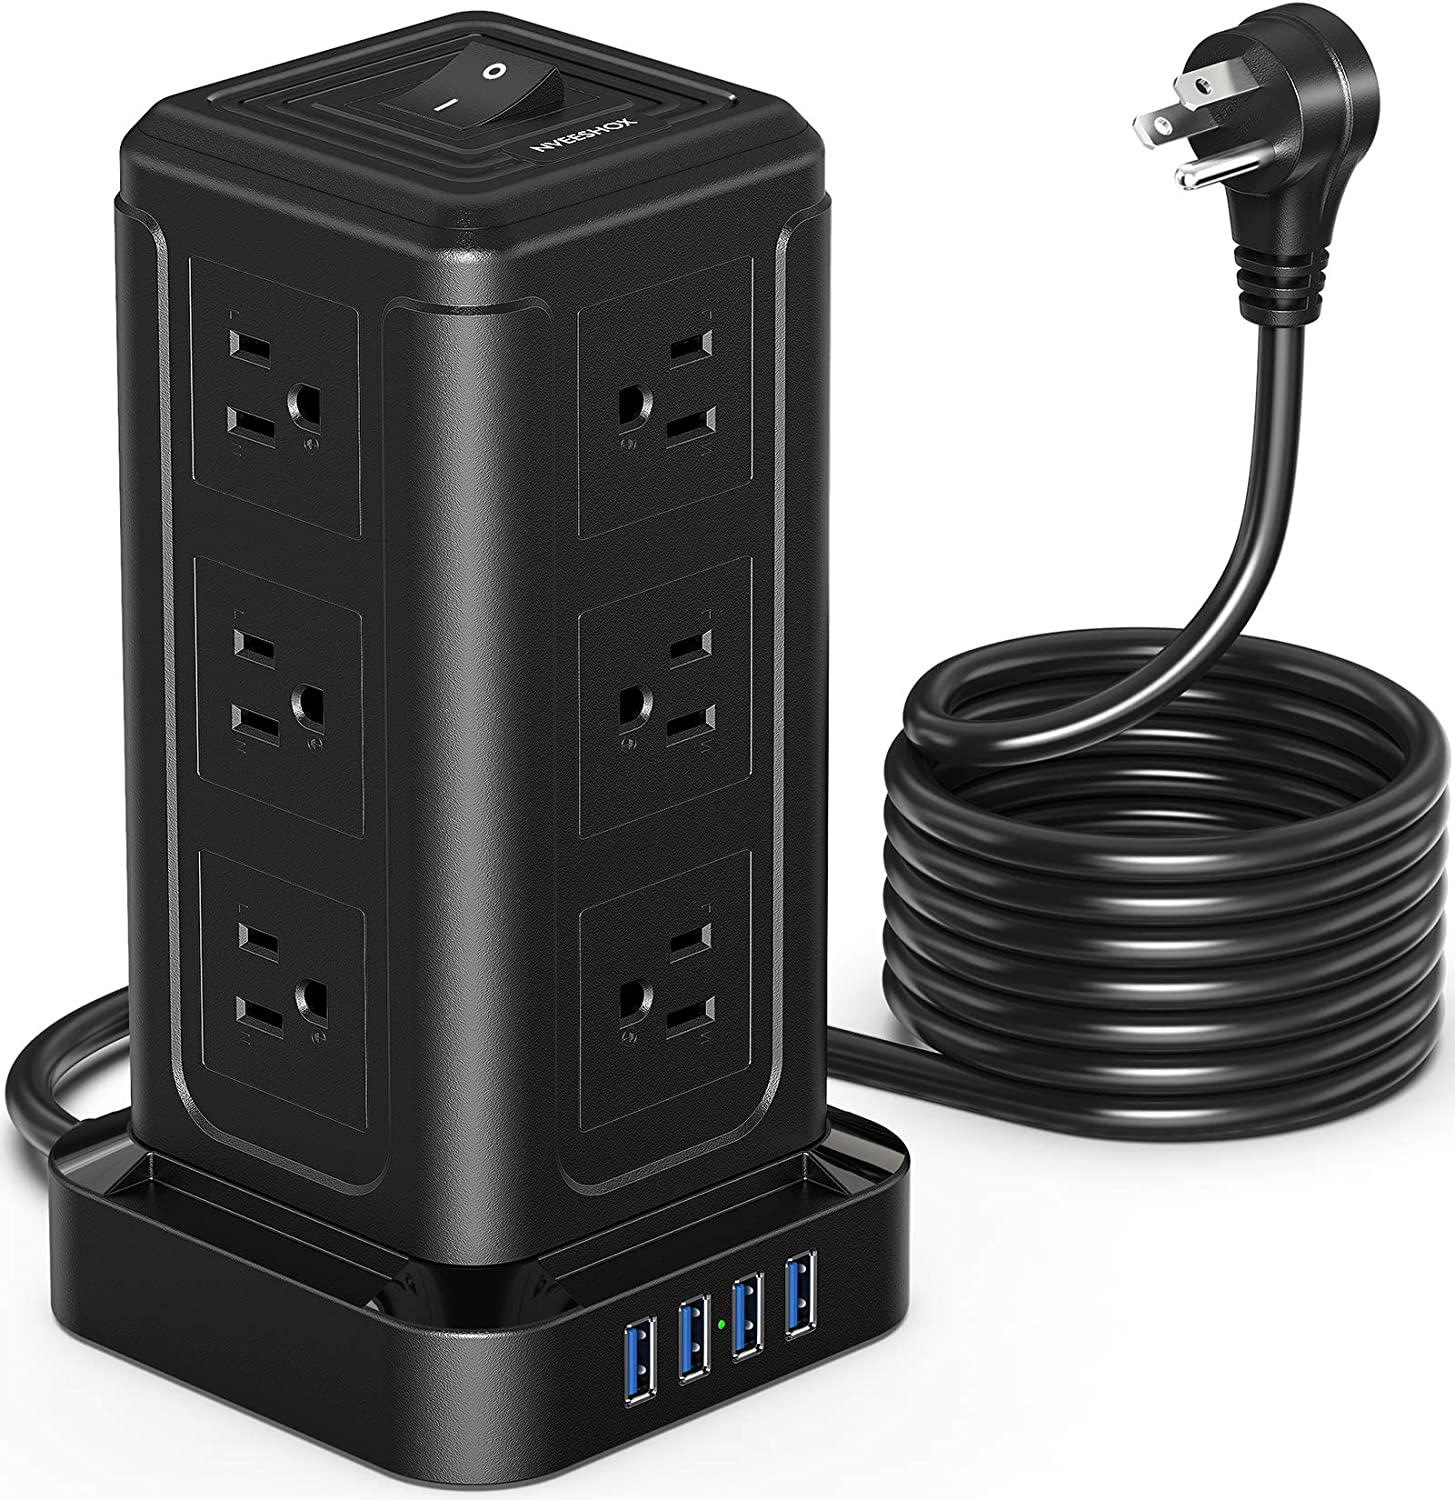 Power Strip Tower, Surge Protector Power Strip with 12 AC Outlets, 4 USB Ports and 10ft Extension Cord, Charging Station 1080J Overload Protection Fire Proof for PC Tablet Computer Home Office